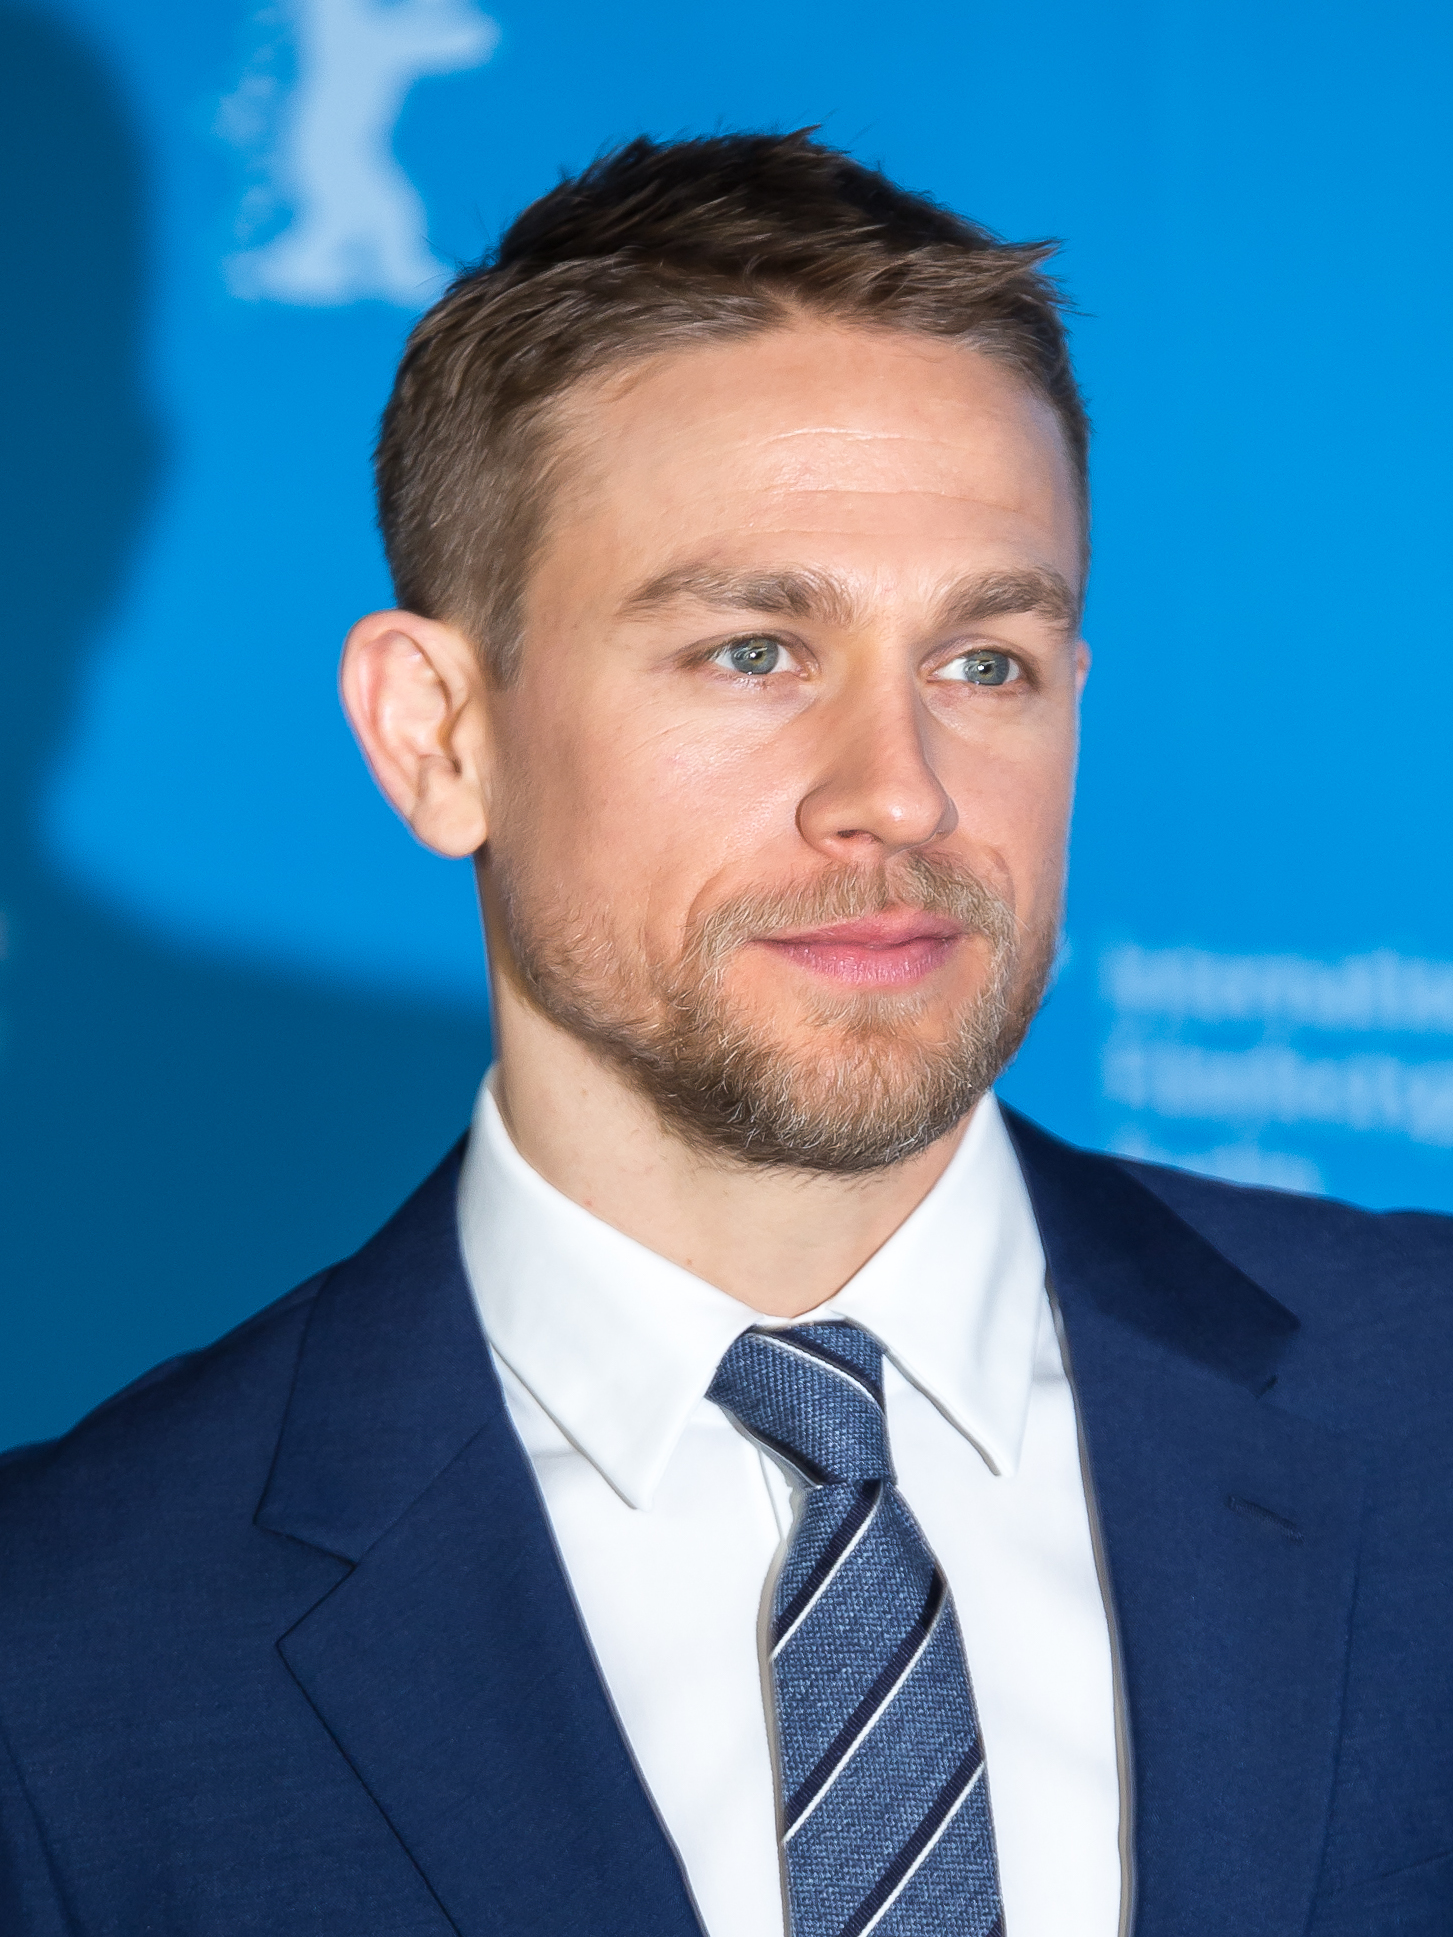 The 40-year old son of father (?) and mother(?) Charlie Hunnam in 2020 photo. Charlie Hunnam earned a unknown million dollar salary - leaving the net worth at 8 million in 2020